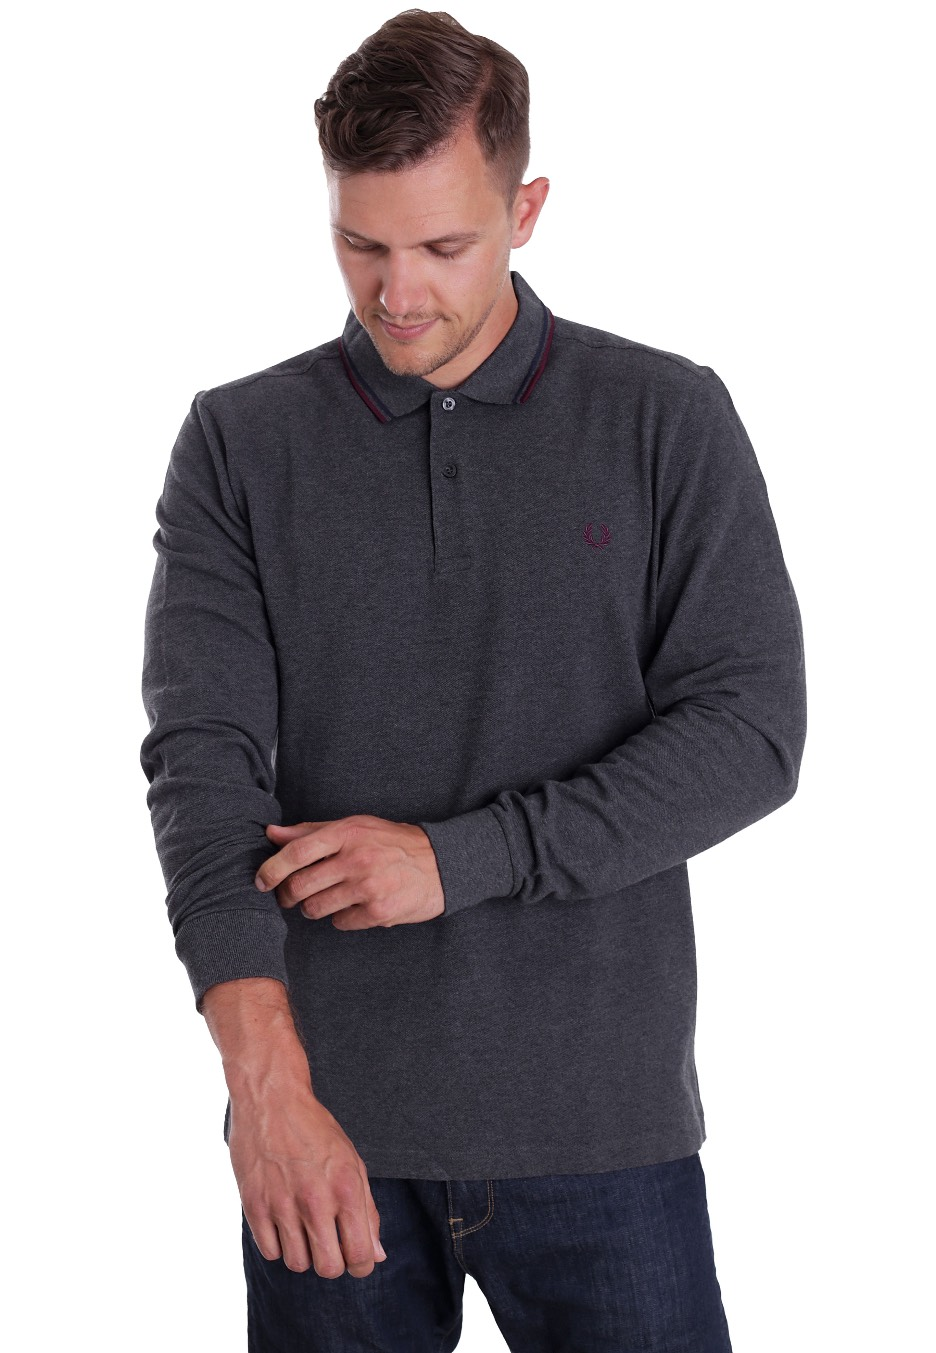 23b9593189422 ... Fred Perry - Twin Tipped Graphite Marl/Carbon Blue/Mahogany - Longsleeve